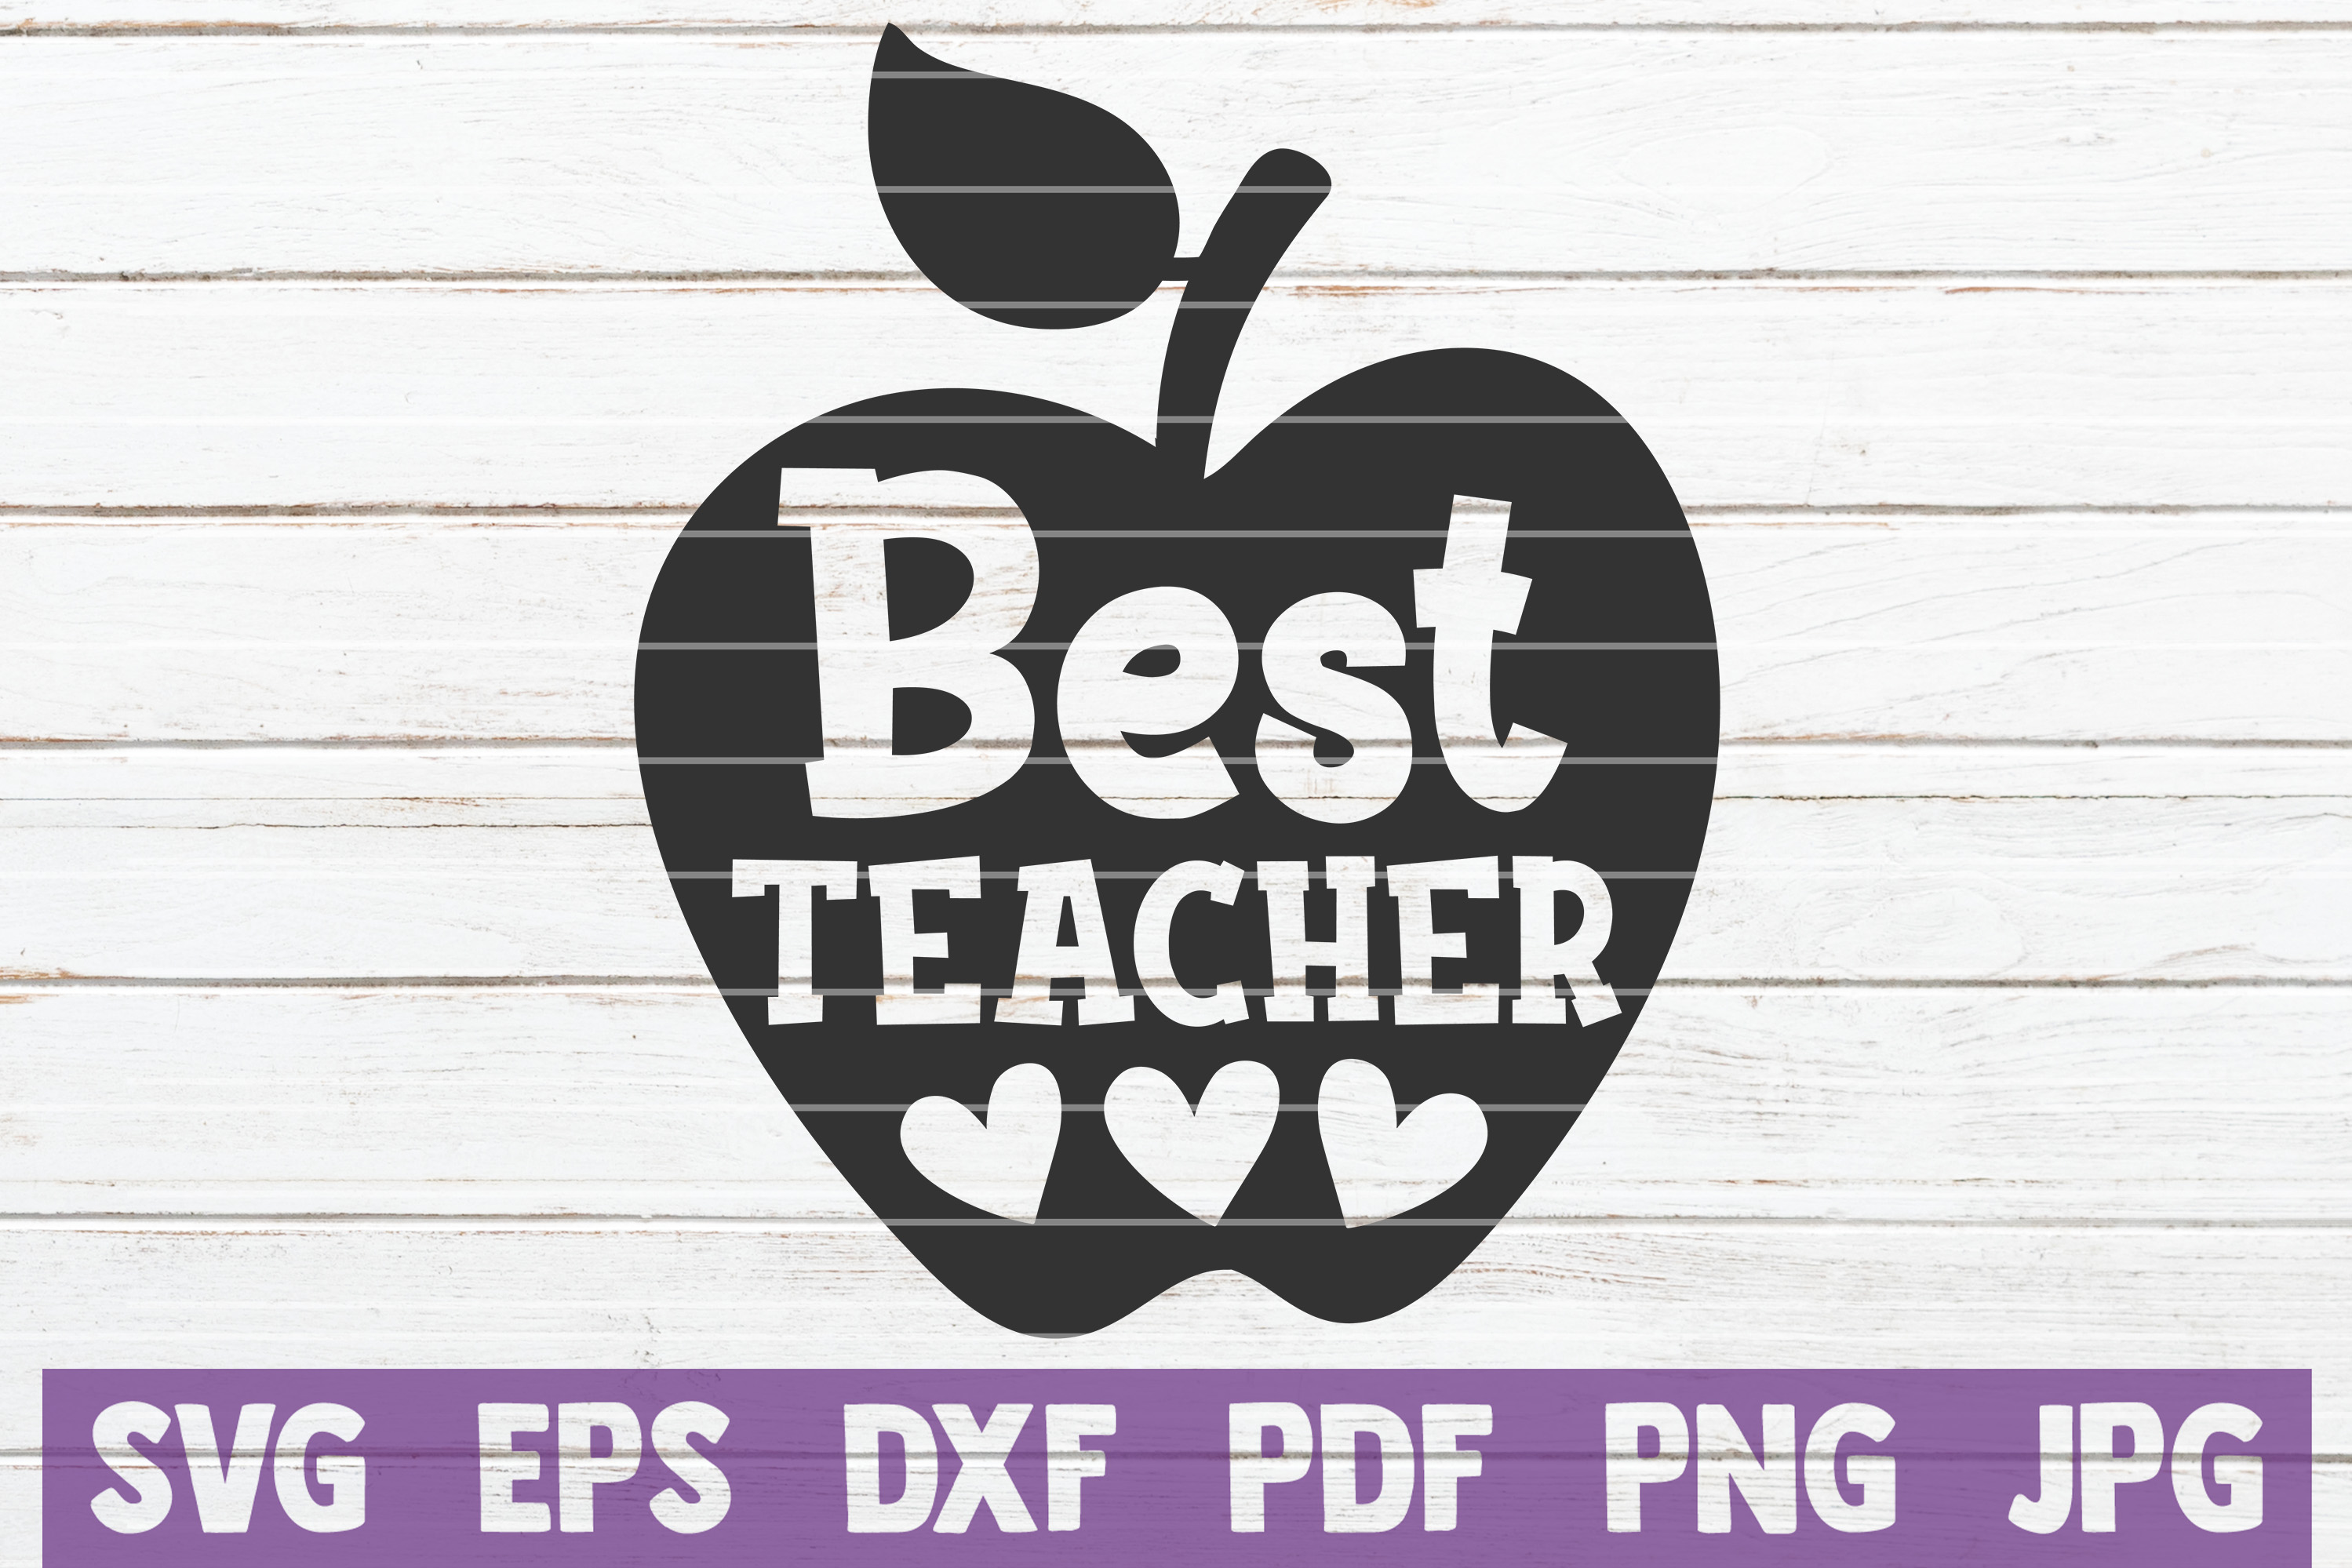 Best Teacher SVG Cut File | commercial use example image 1